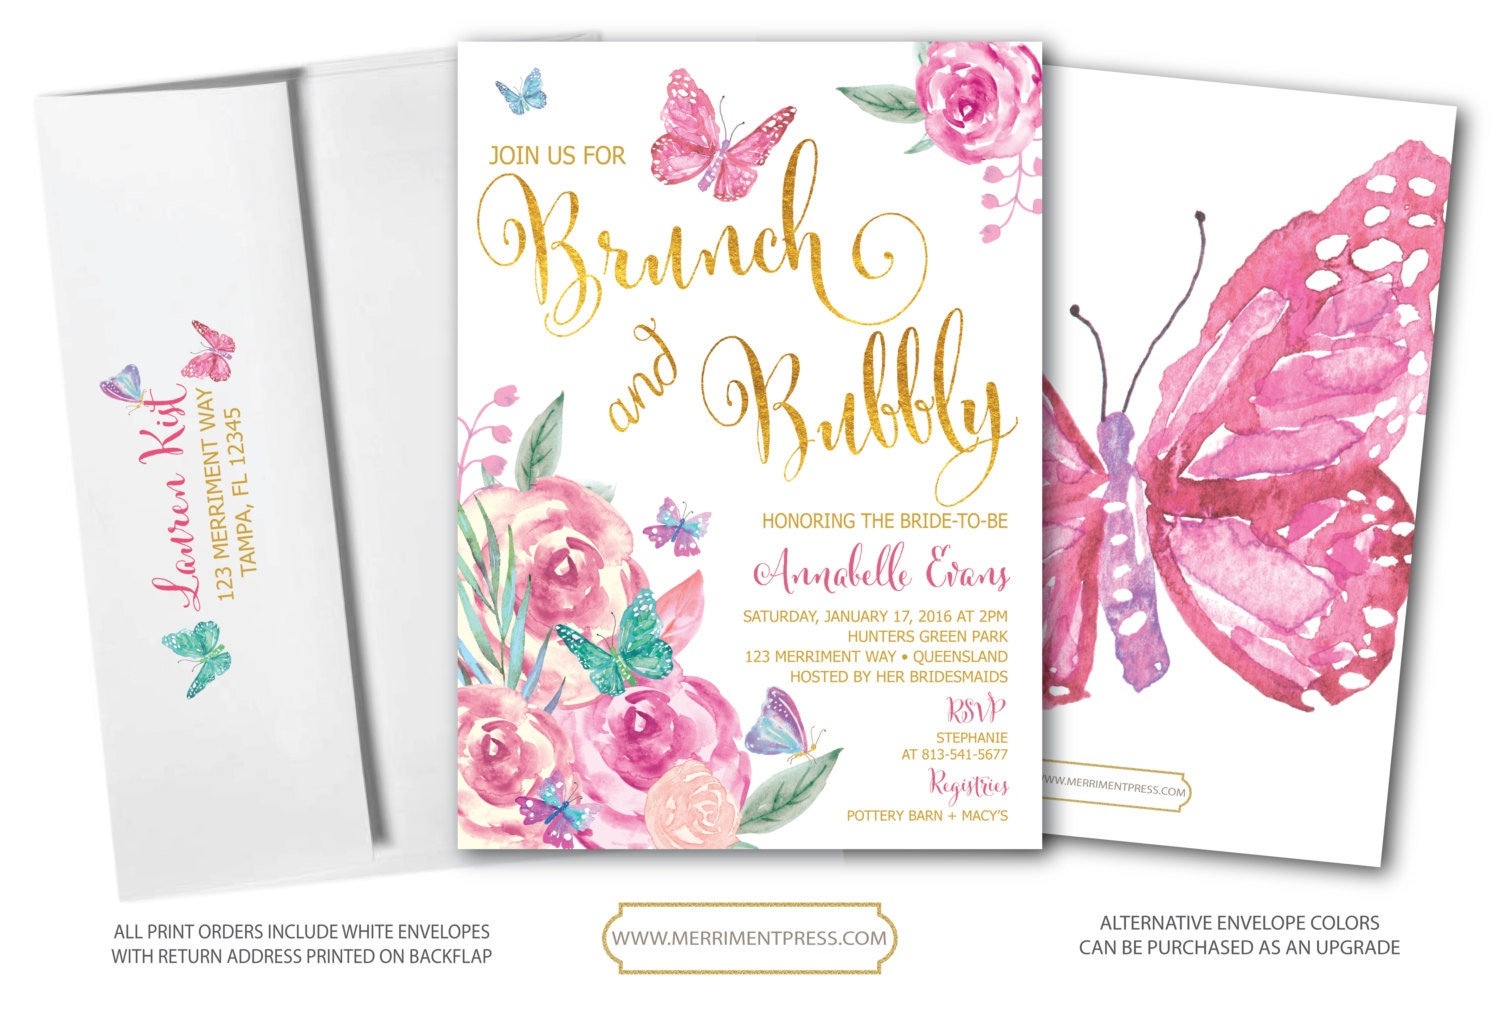 butterfly brunch and bubbly invitation butterflies bridal shower invitation floral watercolor pink gold printed printable victoria